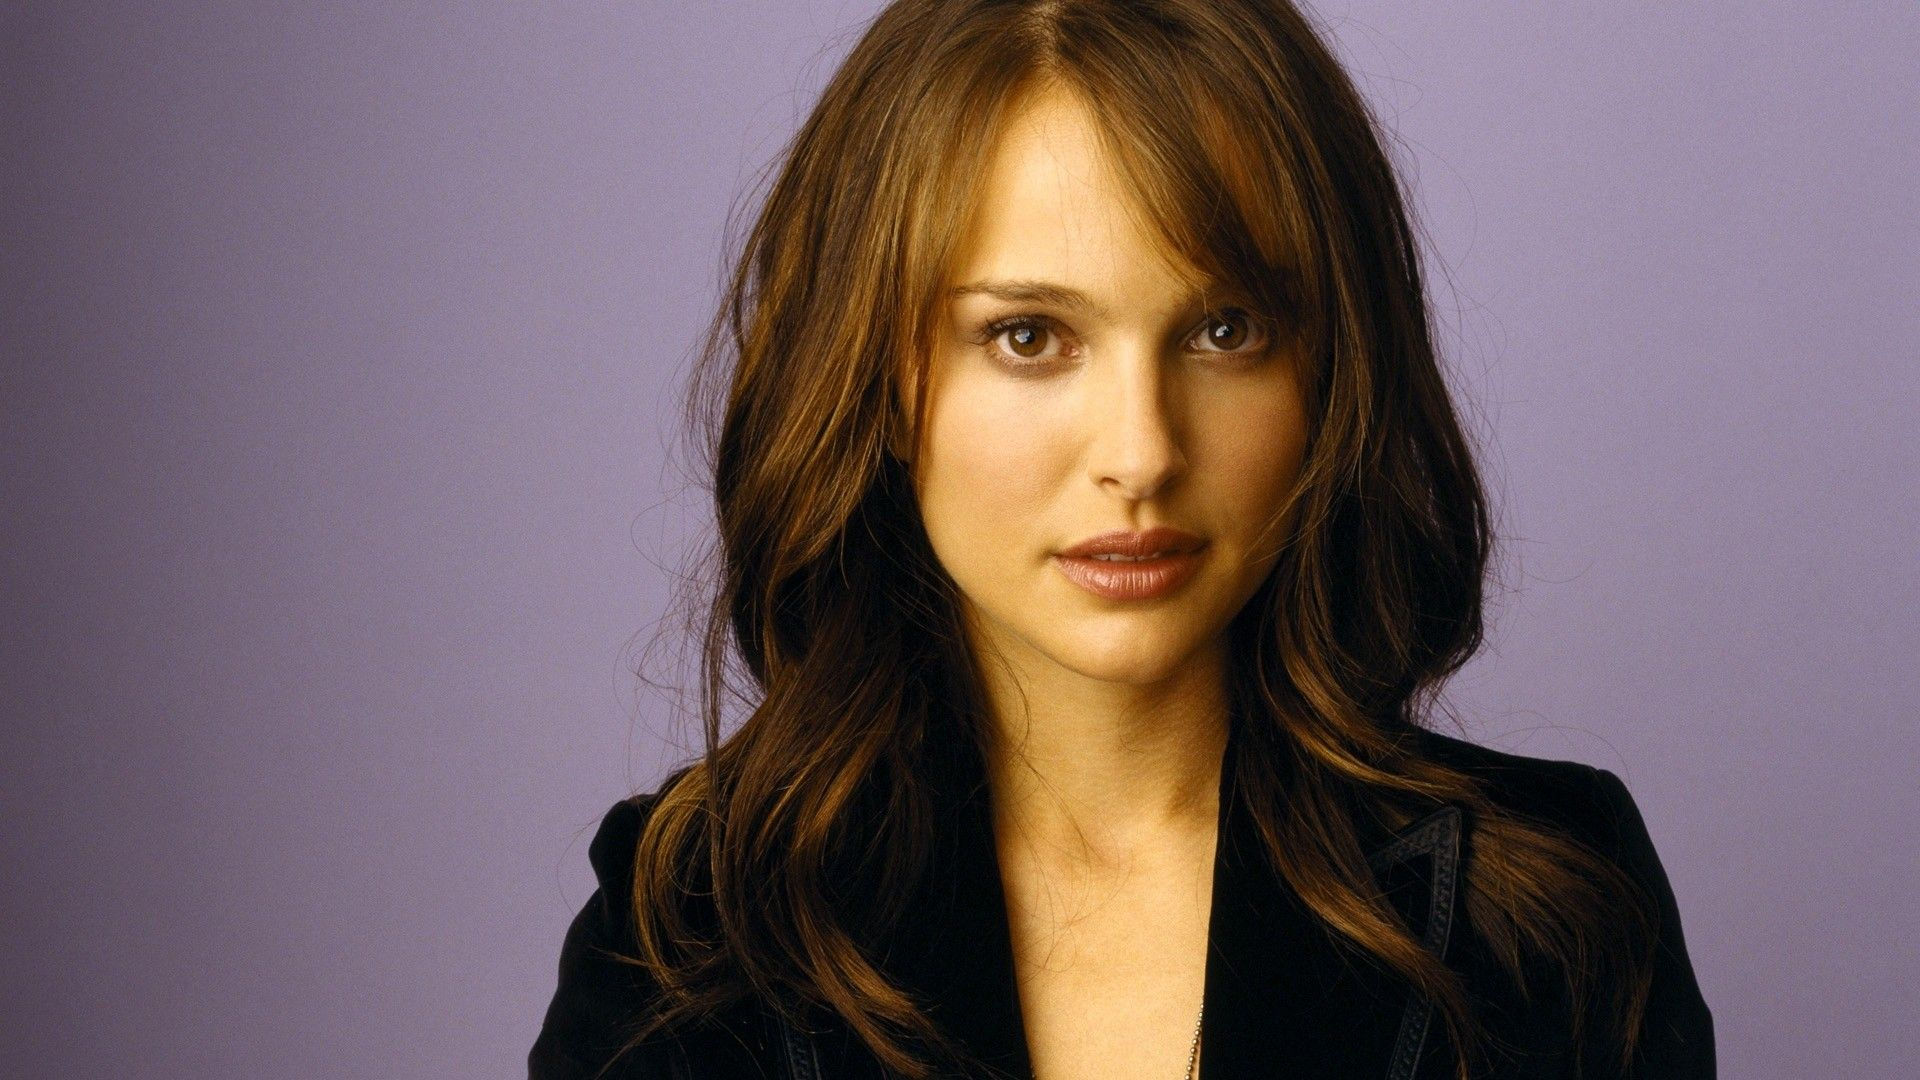 Natalie Portman Wallpapers High Resolution and Quality Download